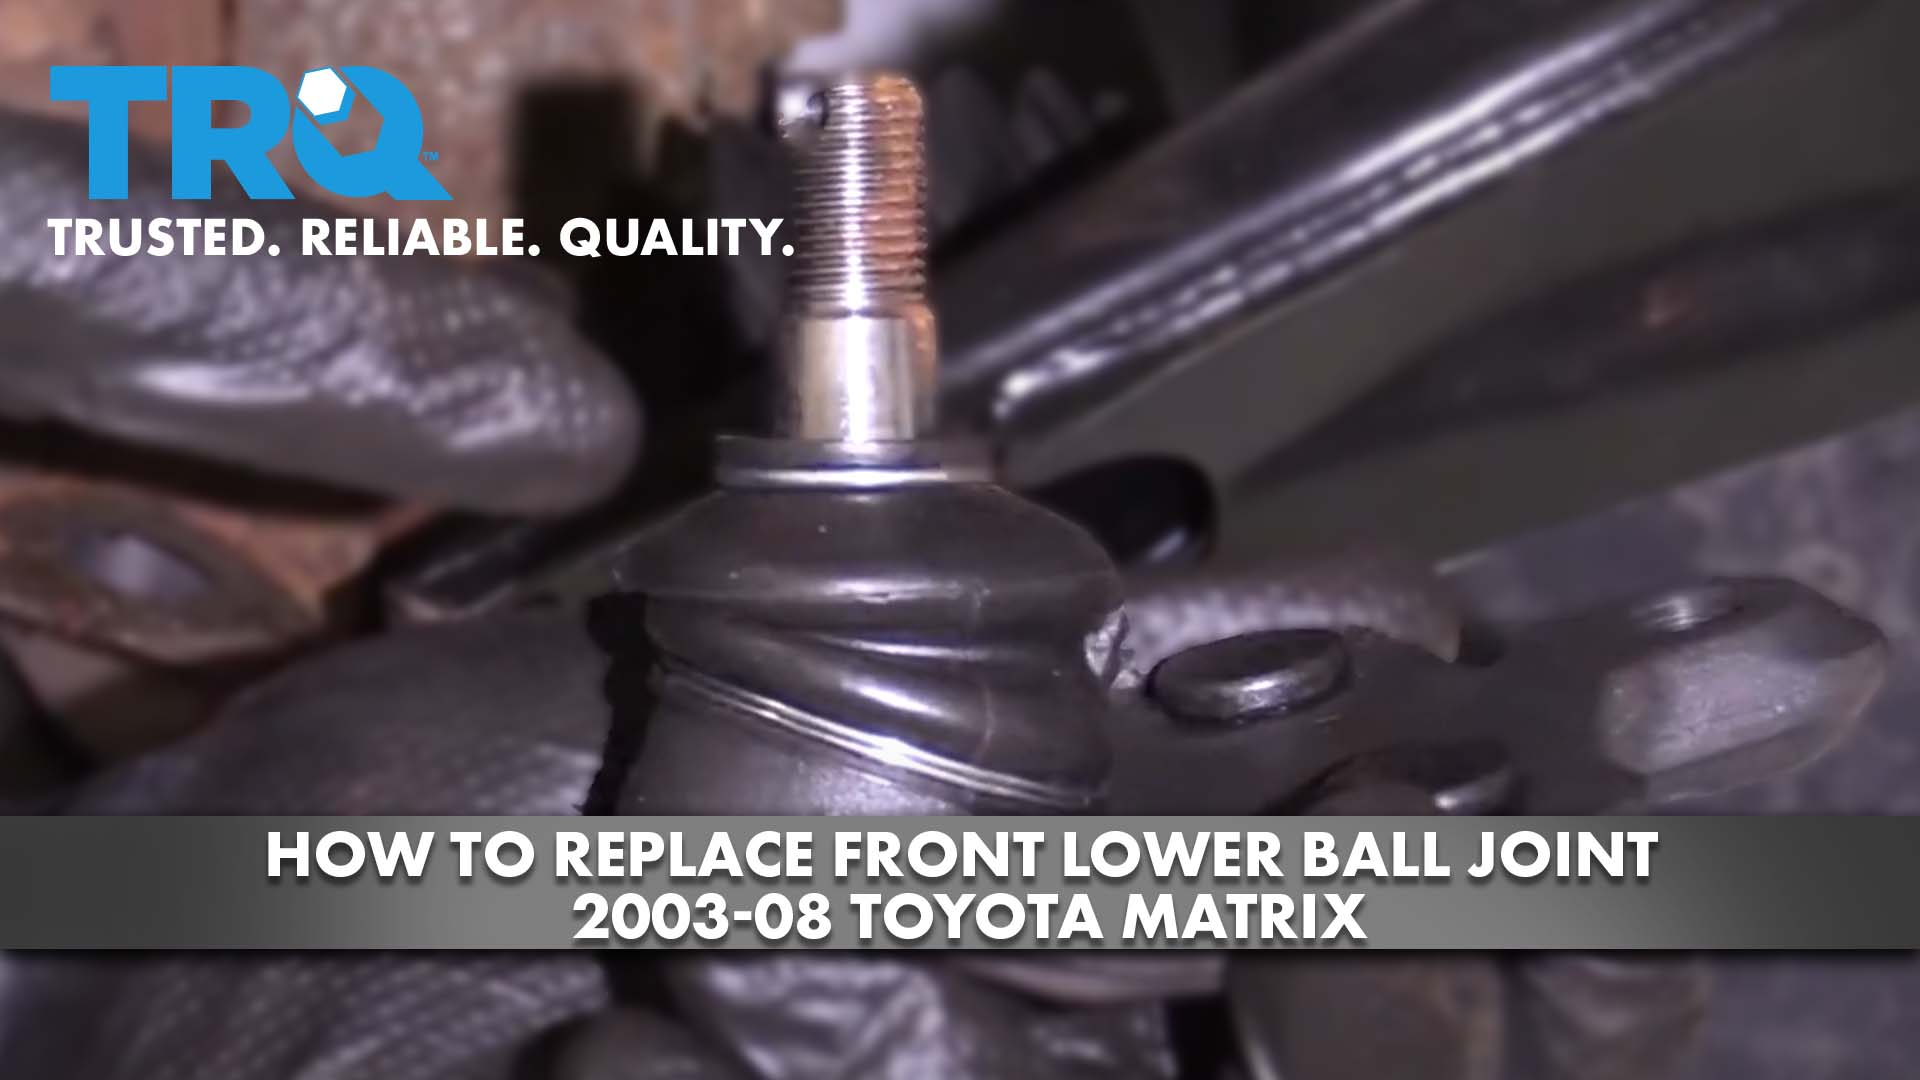 How to Replace Front Lower Ball Joint 2003-08 Toyota Matrix